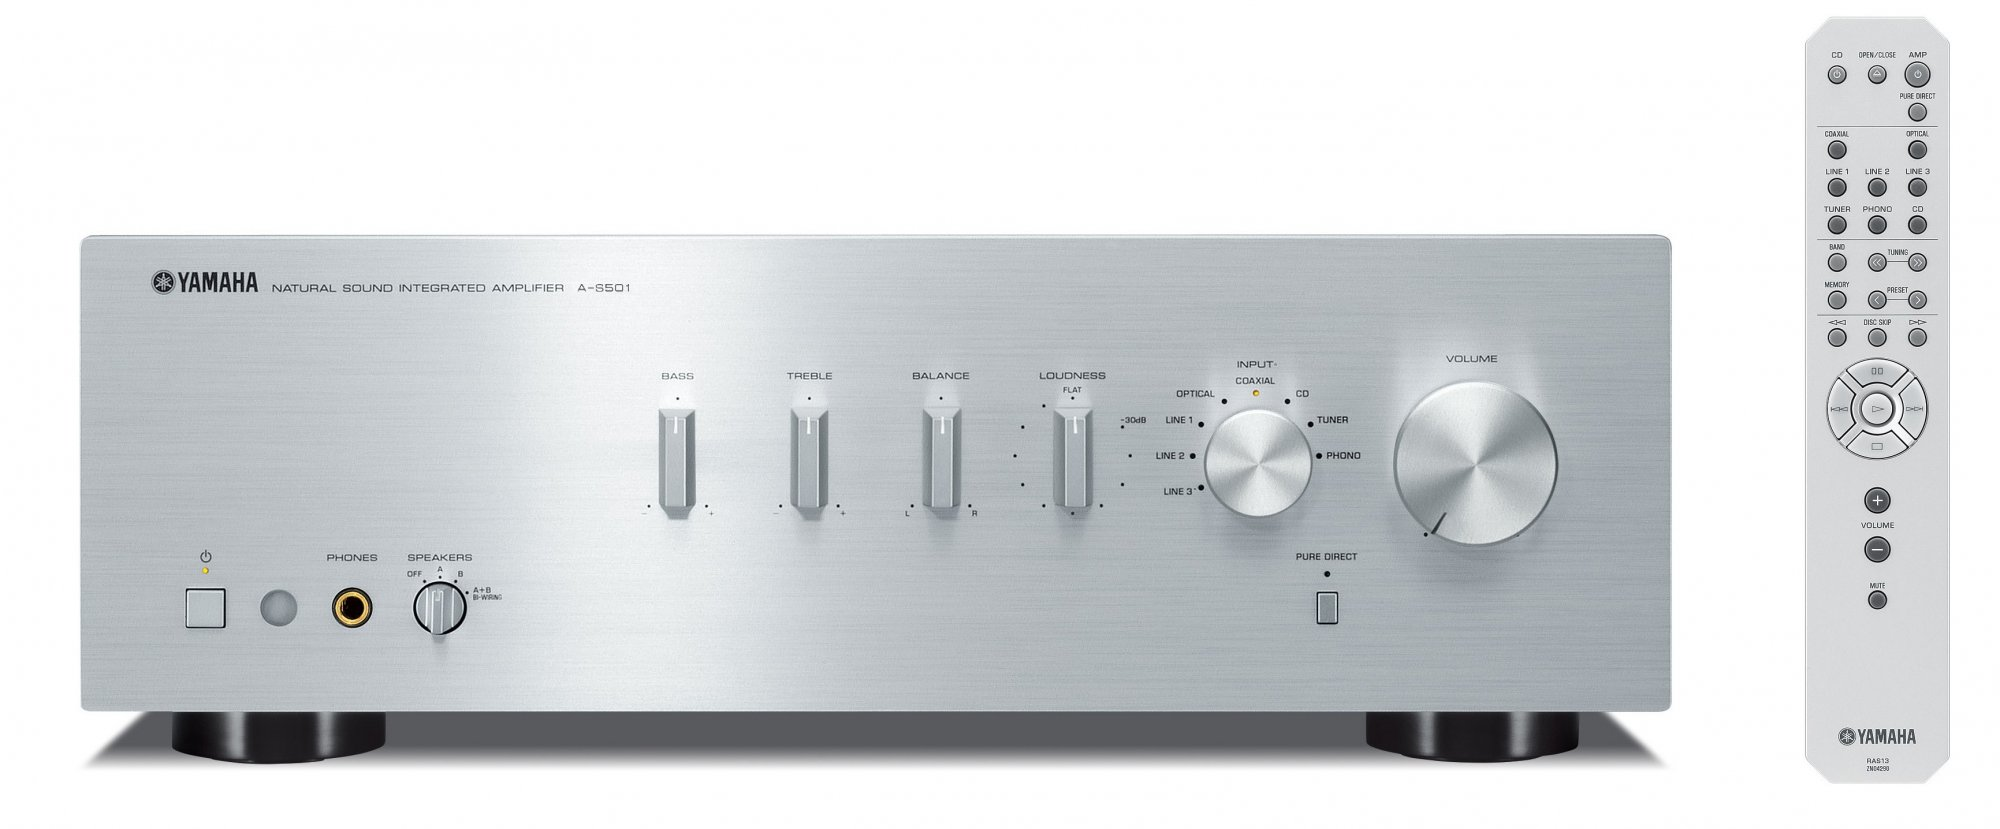 Yamaha A-S501 Integrated Amplifier